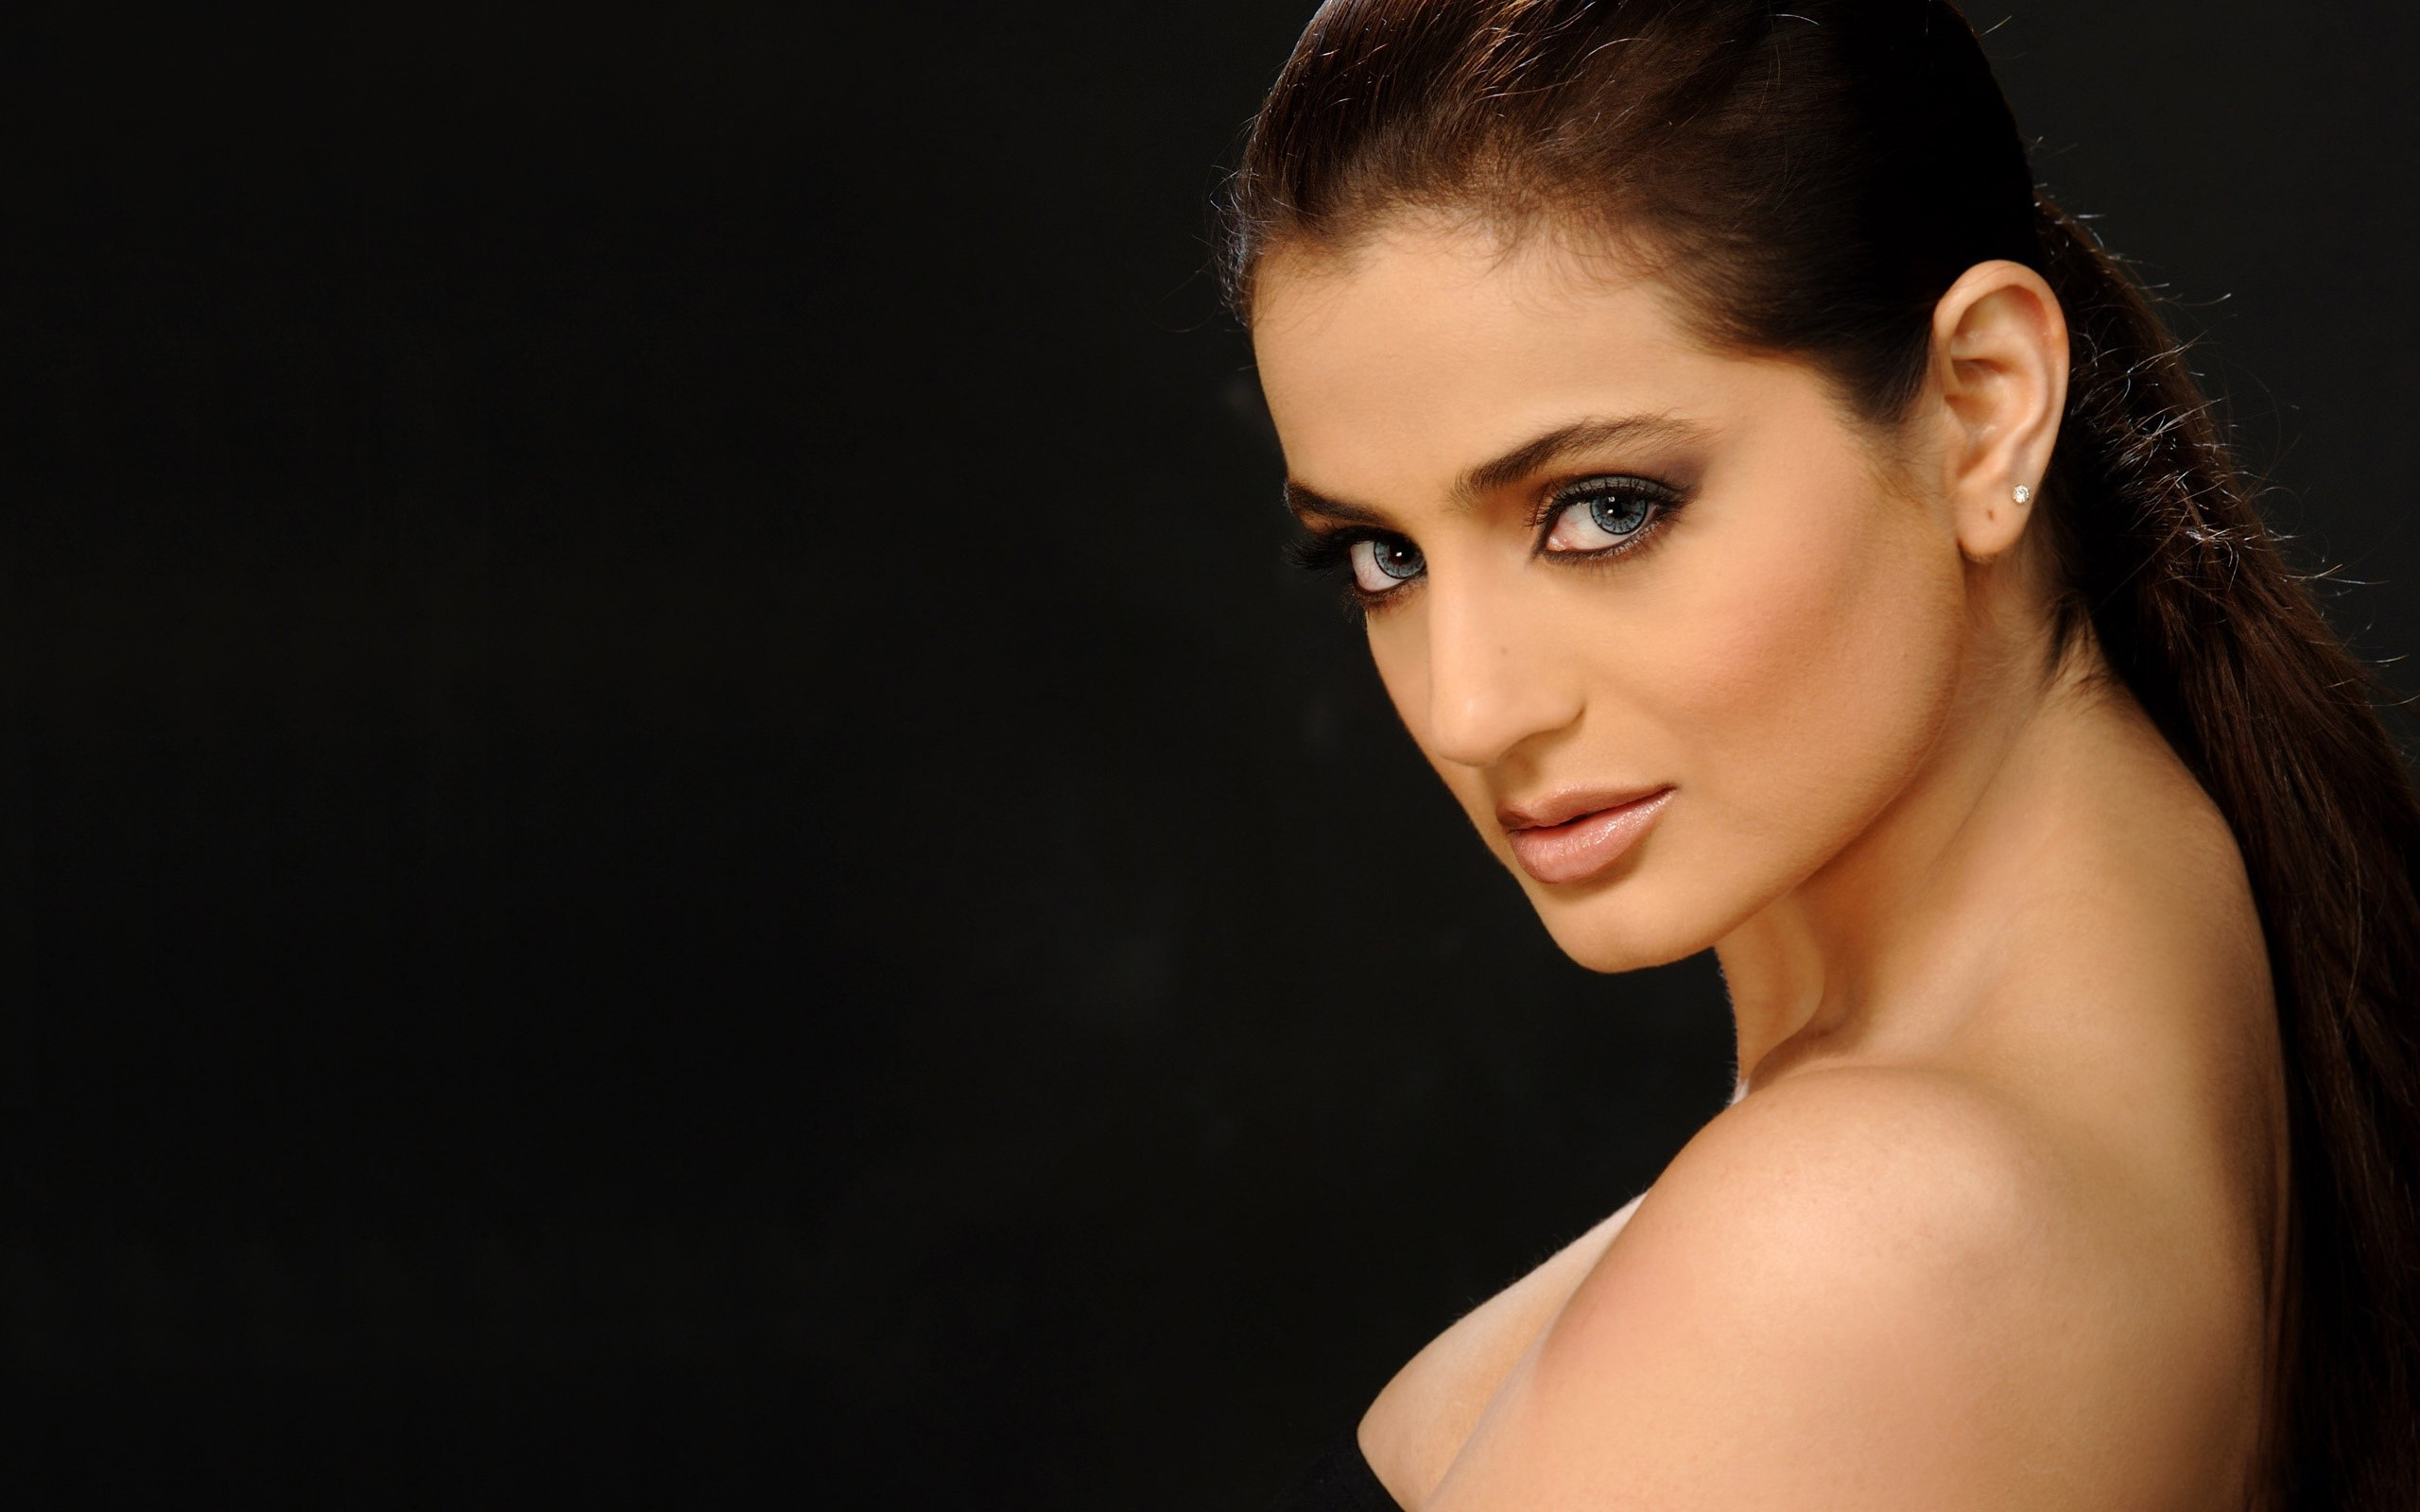 amisha patel full hd wallpaper and background image | 2560x1600 | id